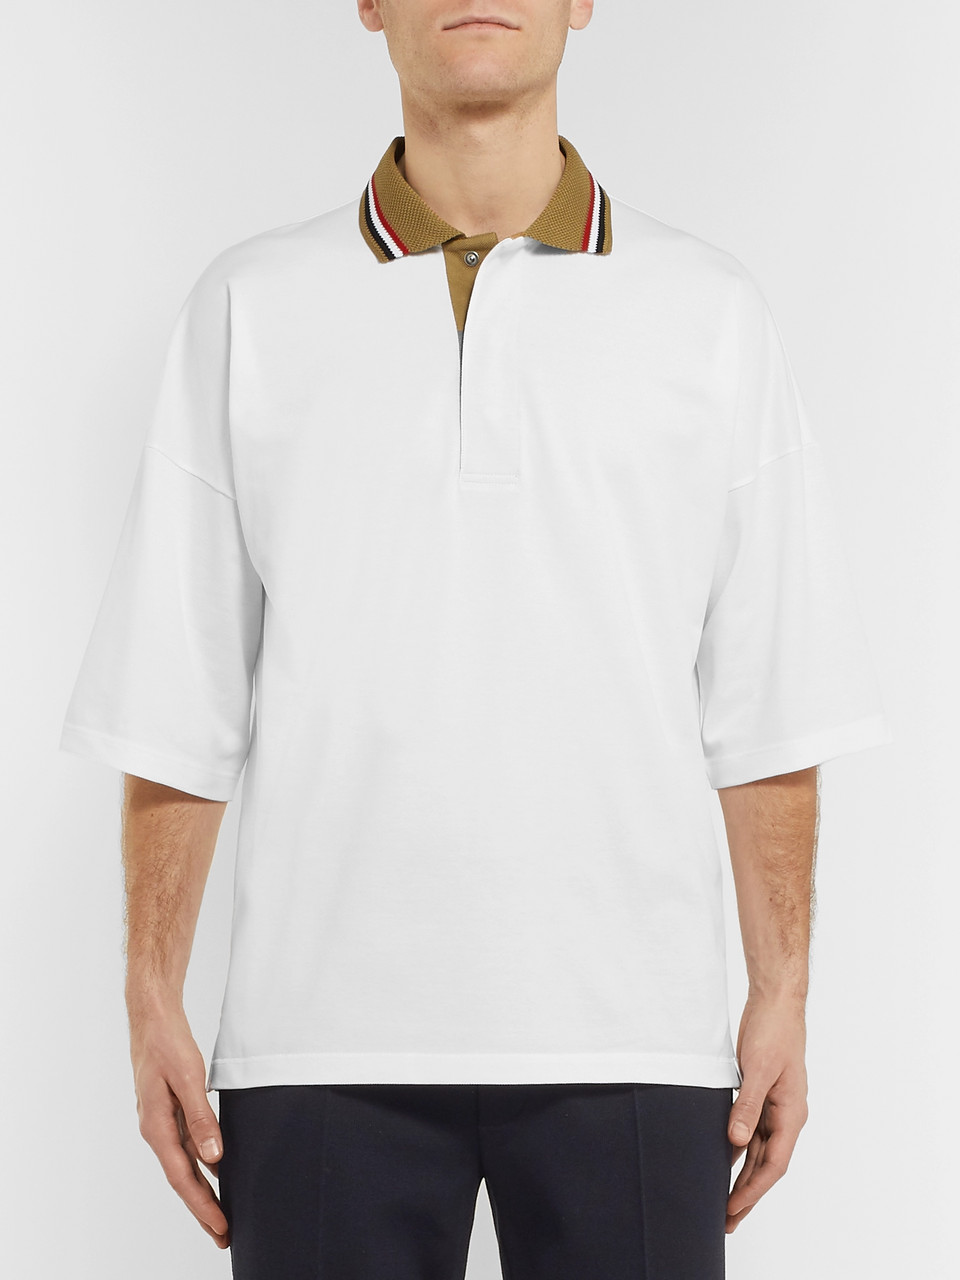 Bottega Veneta Contrast-Tipped Organic Cotton-Piqué Polo Shirt